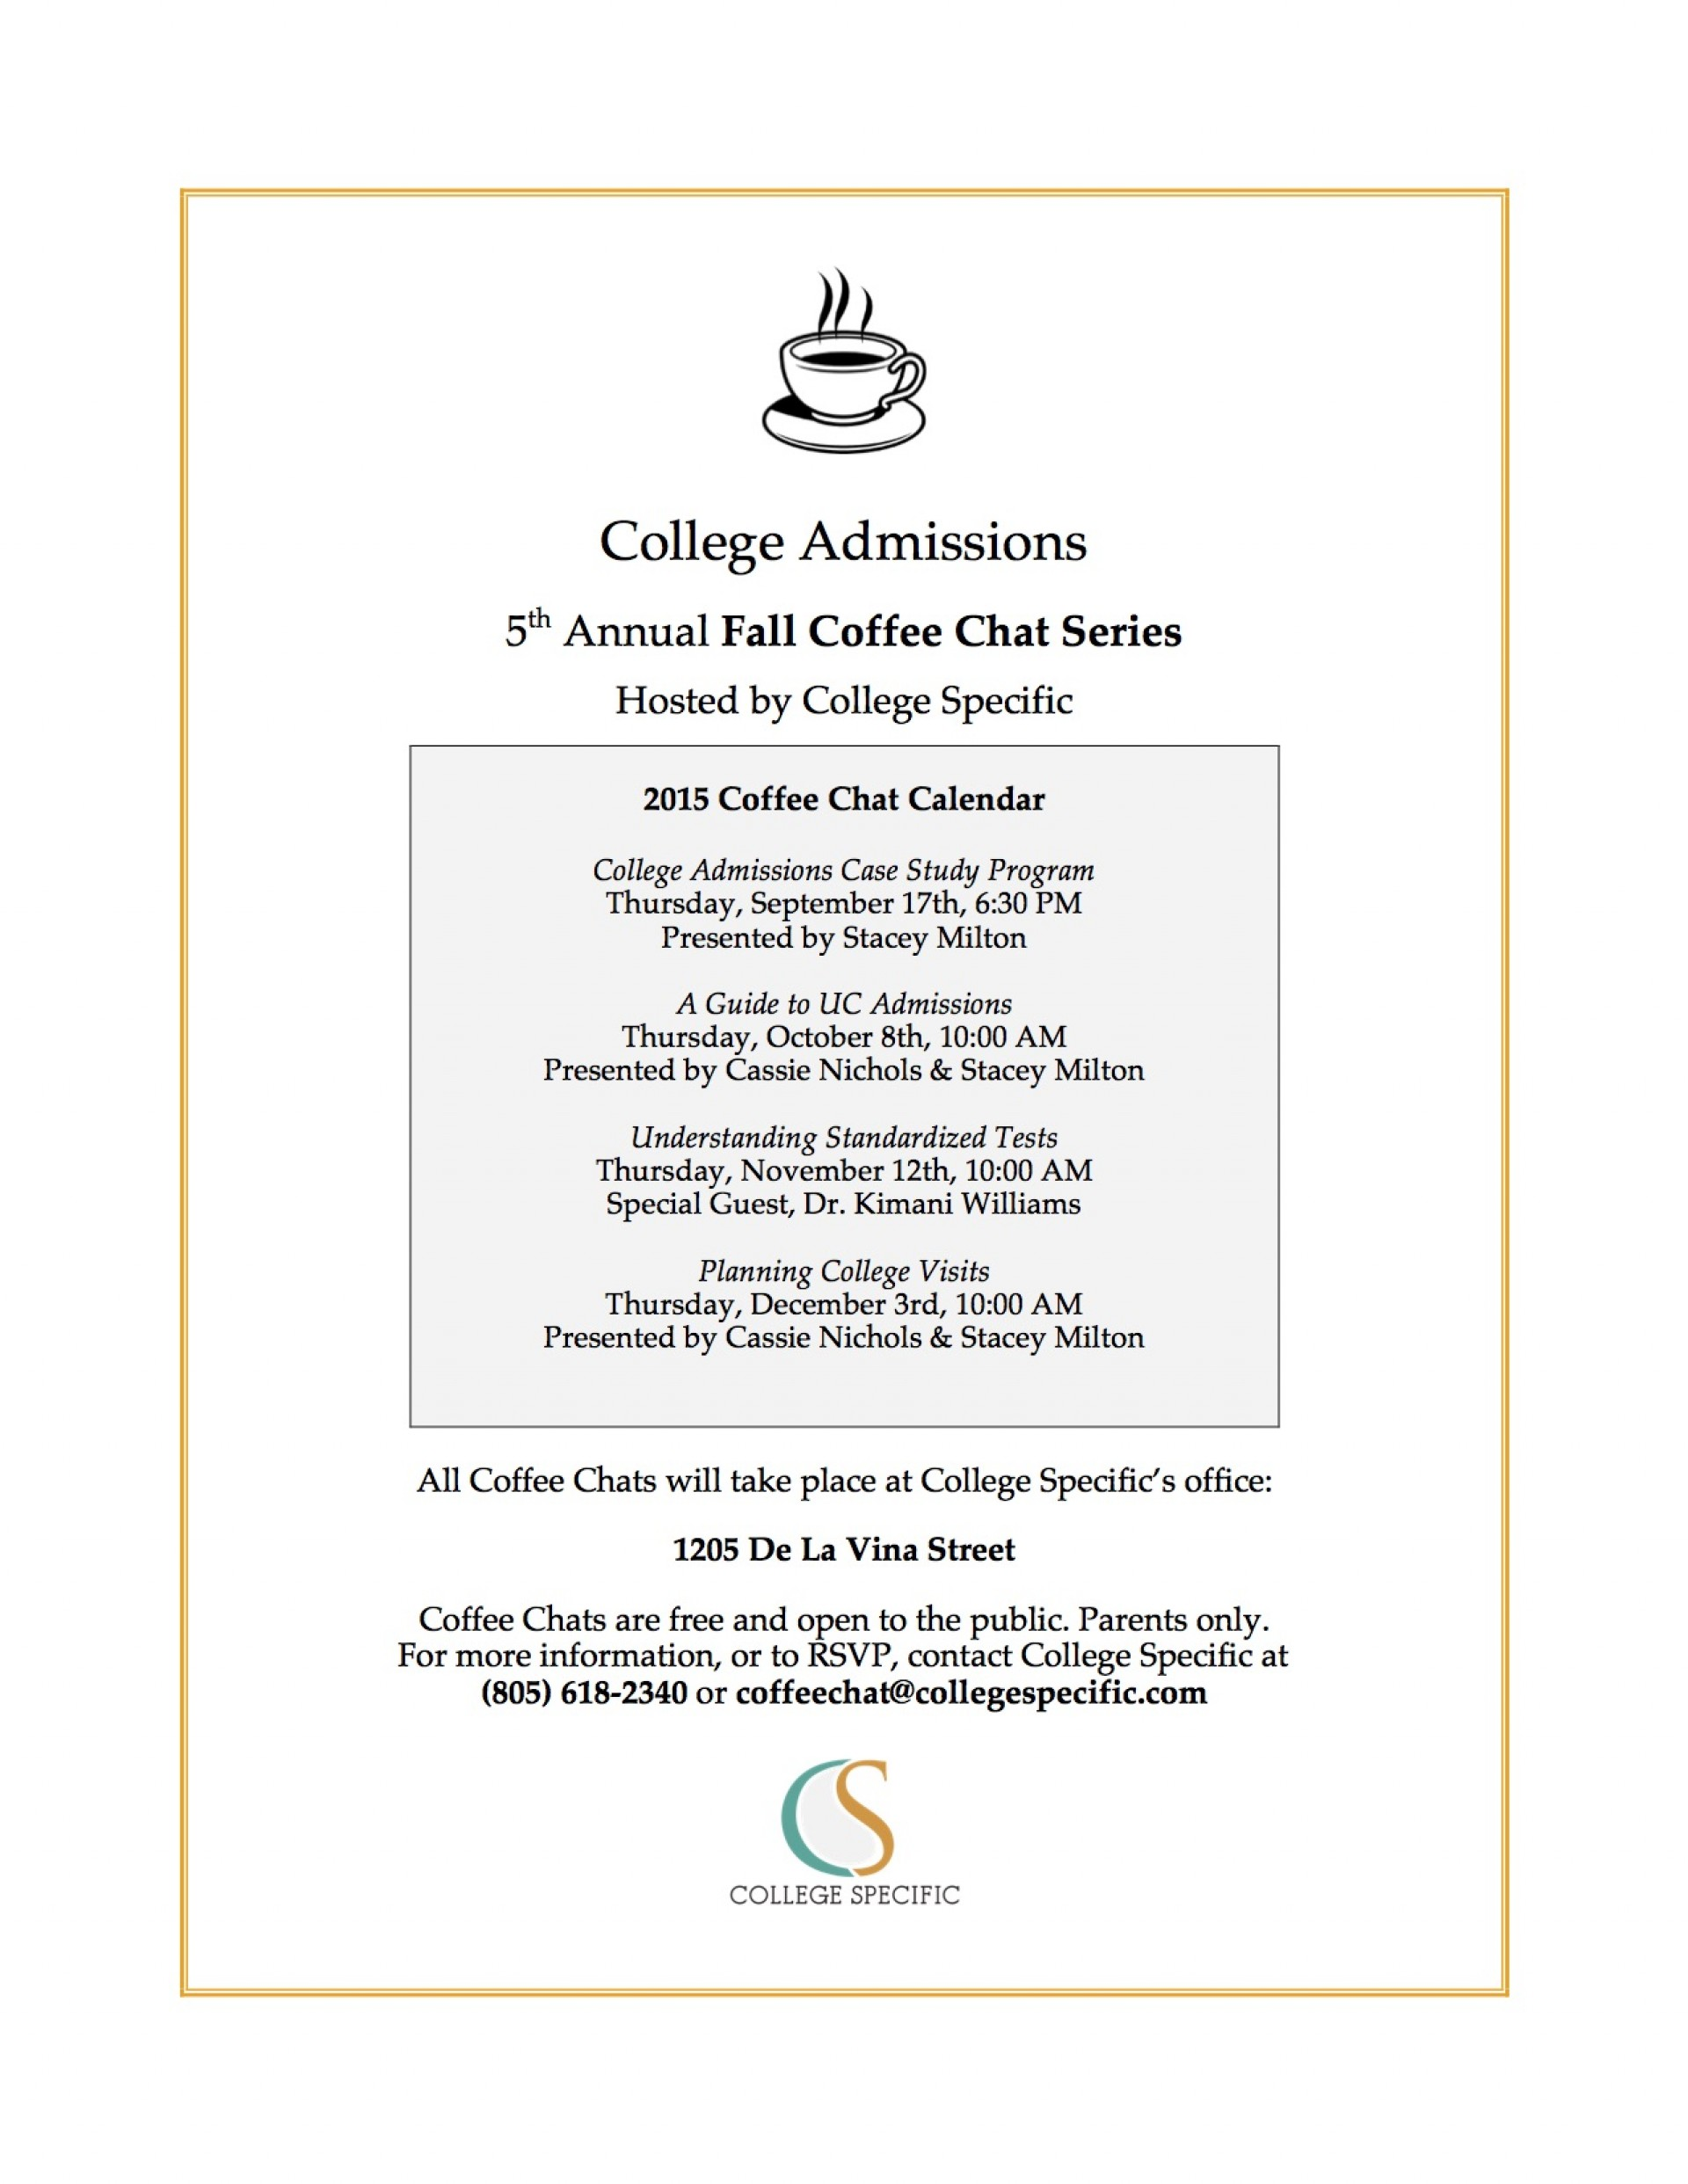 013 Yale Supplement Essay Example Help Admission Paper For Year Coffee Chat Flyer Sample College Confidential University Questions Amazing Prepscholar Guide 1920